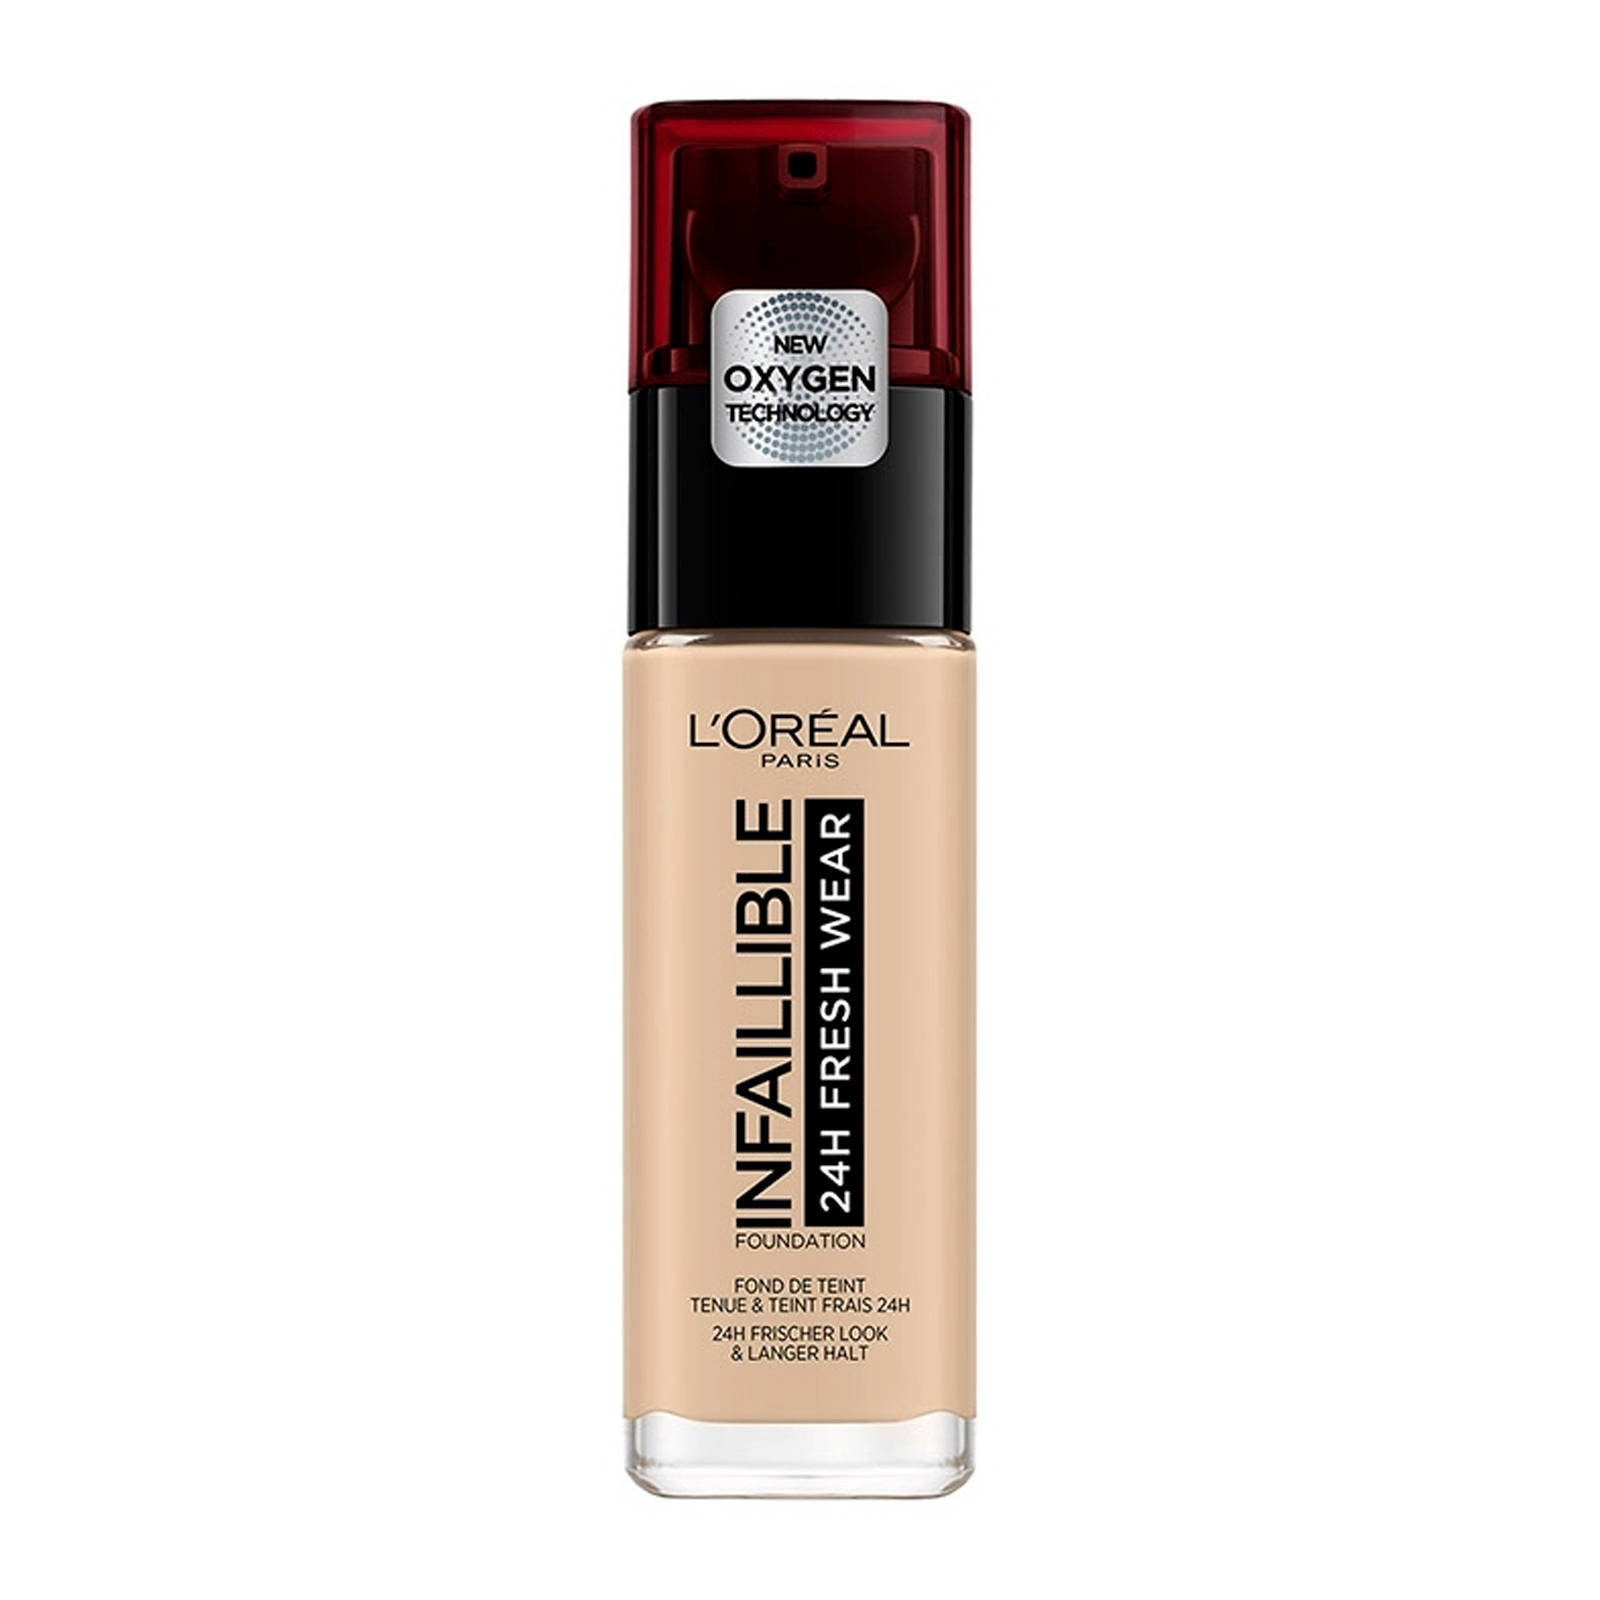 L'Oréal Paris Infallible foundation - 130 True Beige